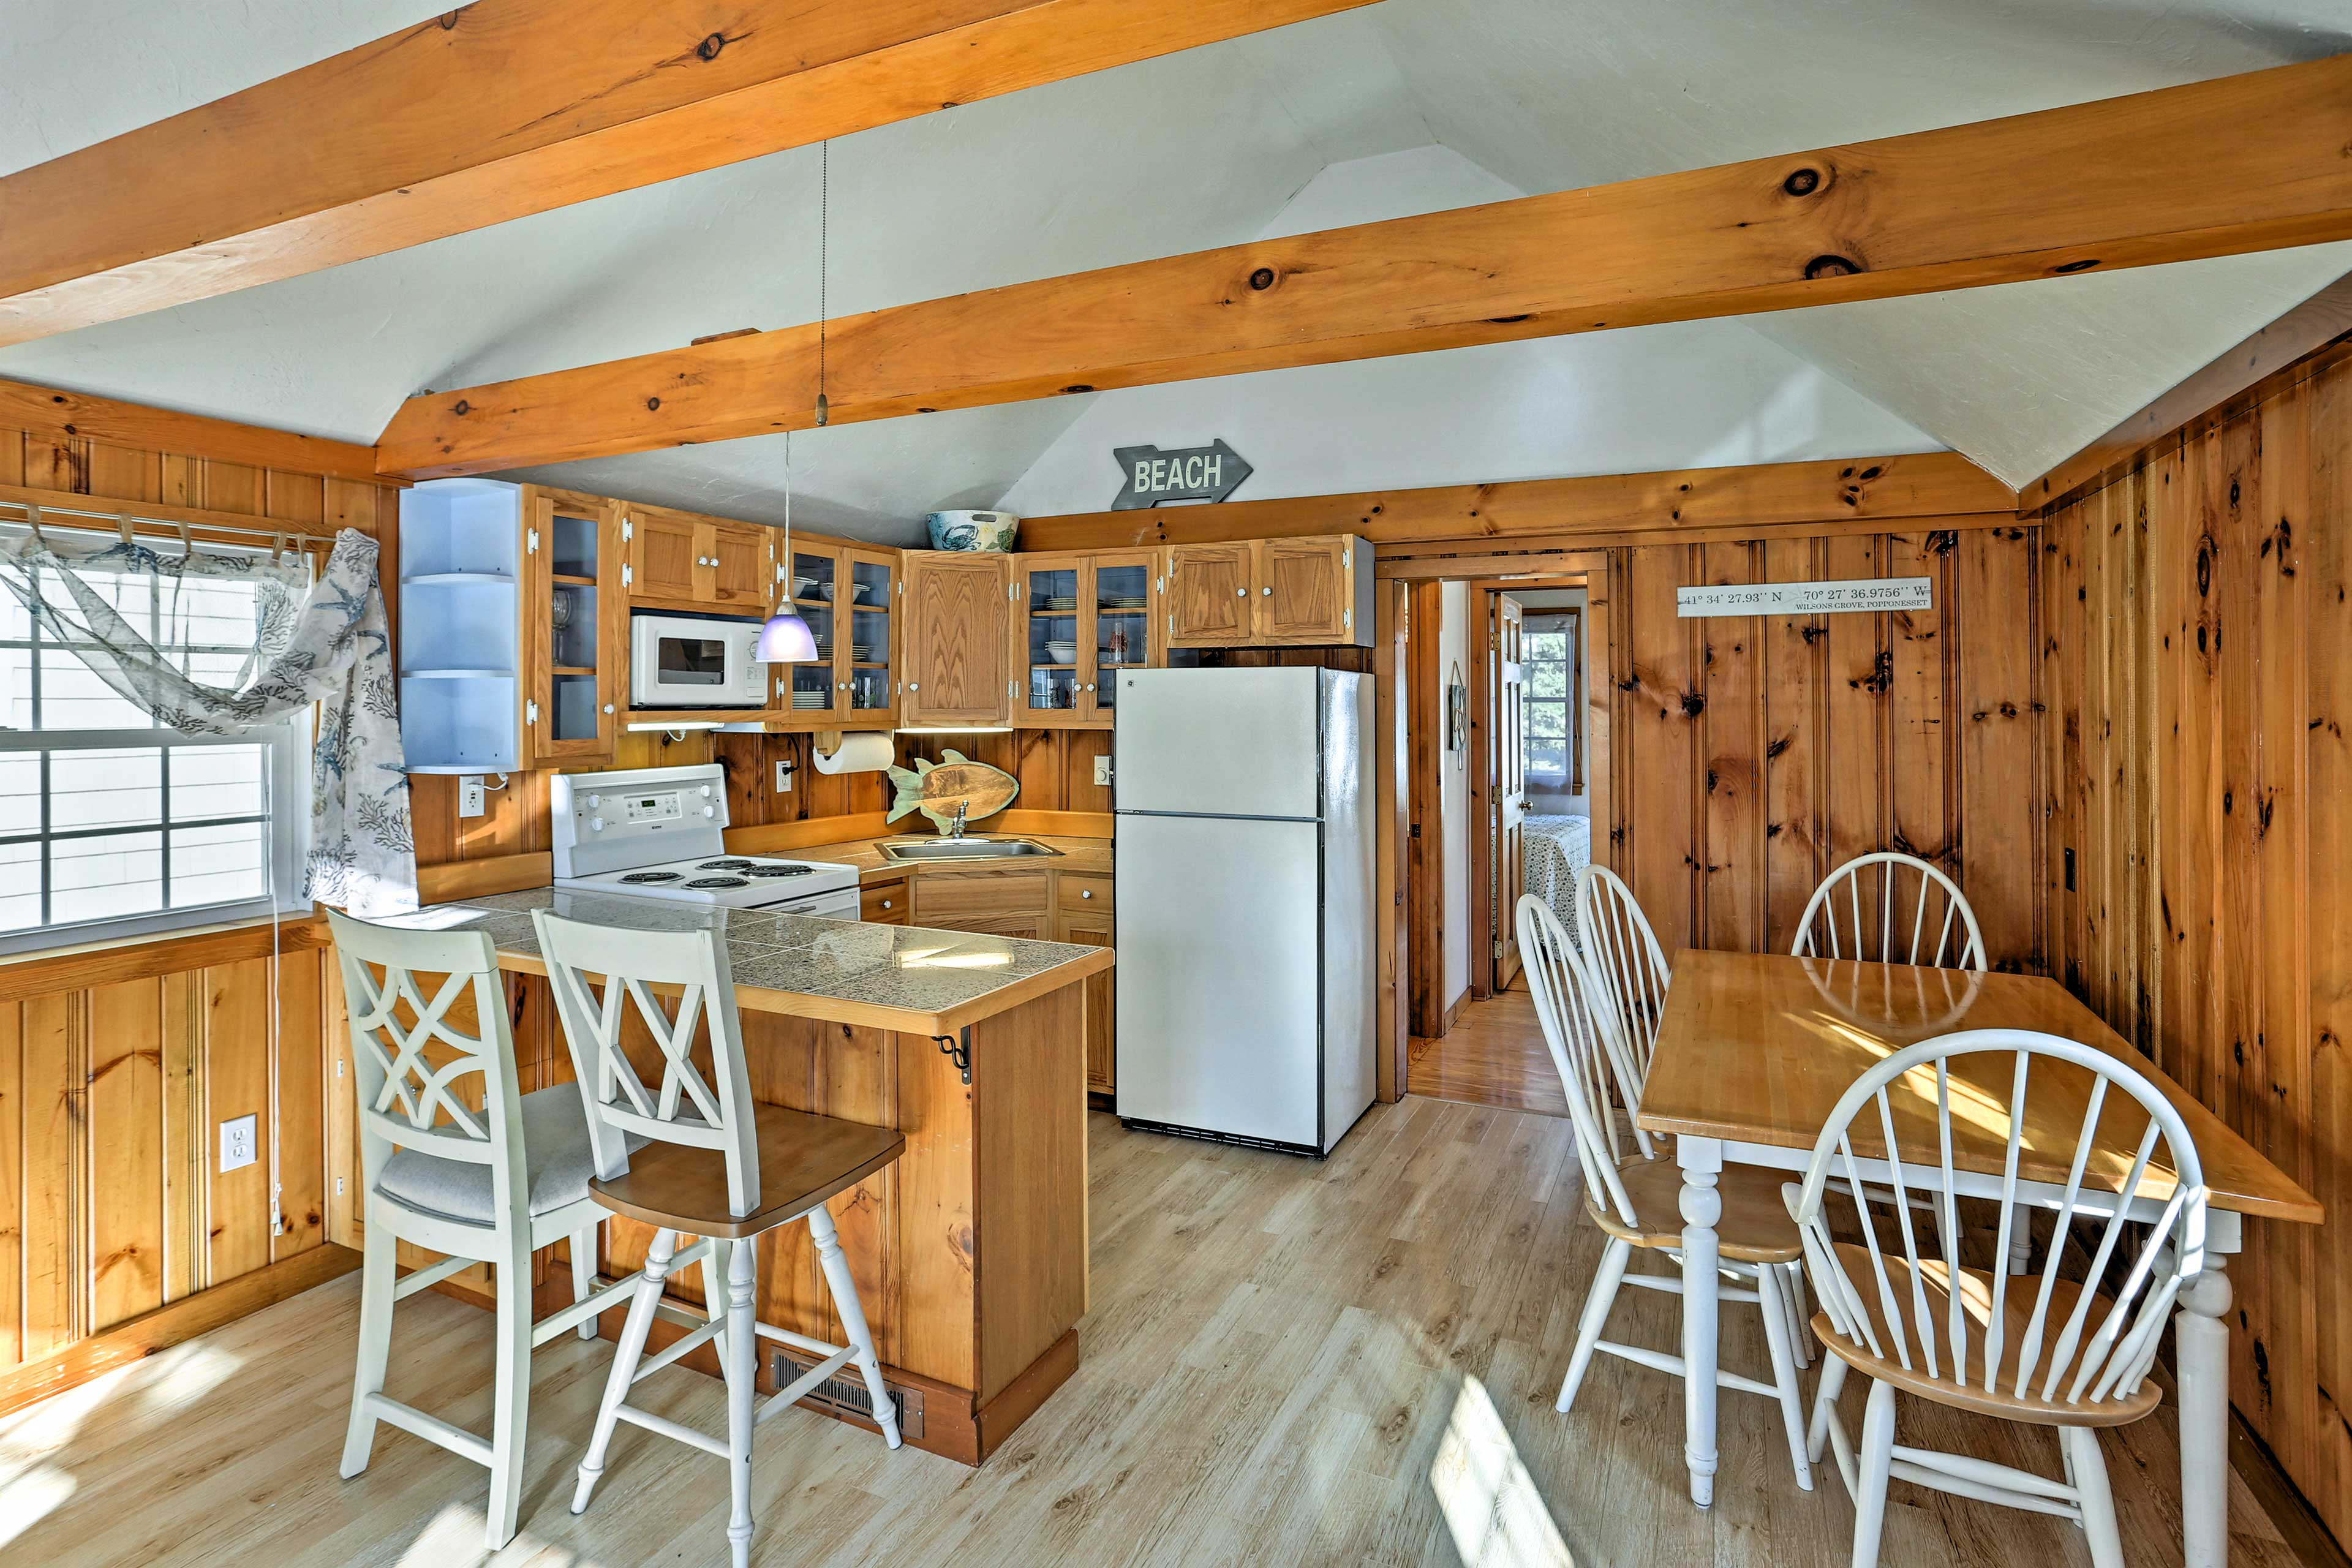 Dine in with the family at the 4-person table adjacent to the kitchen.